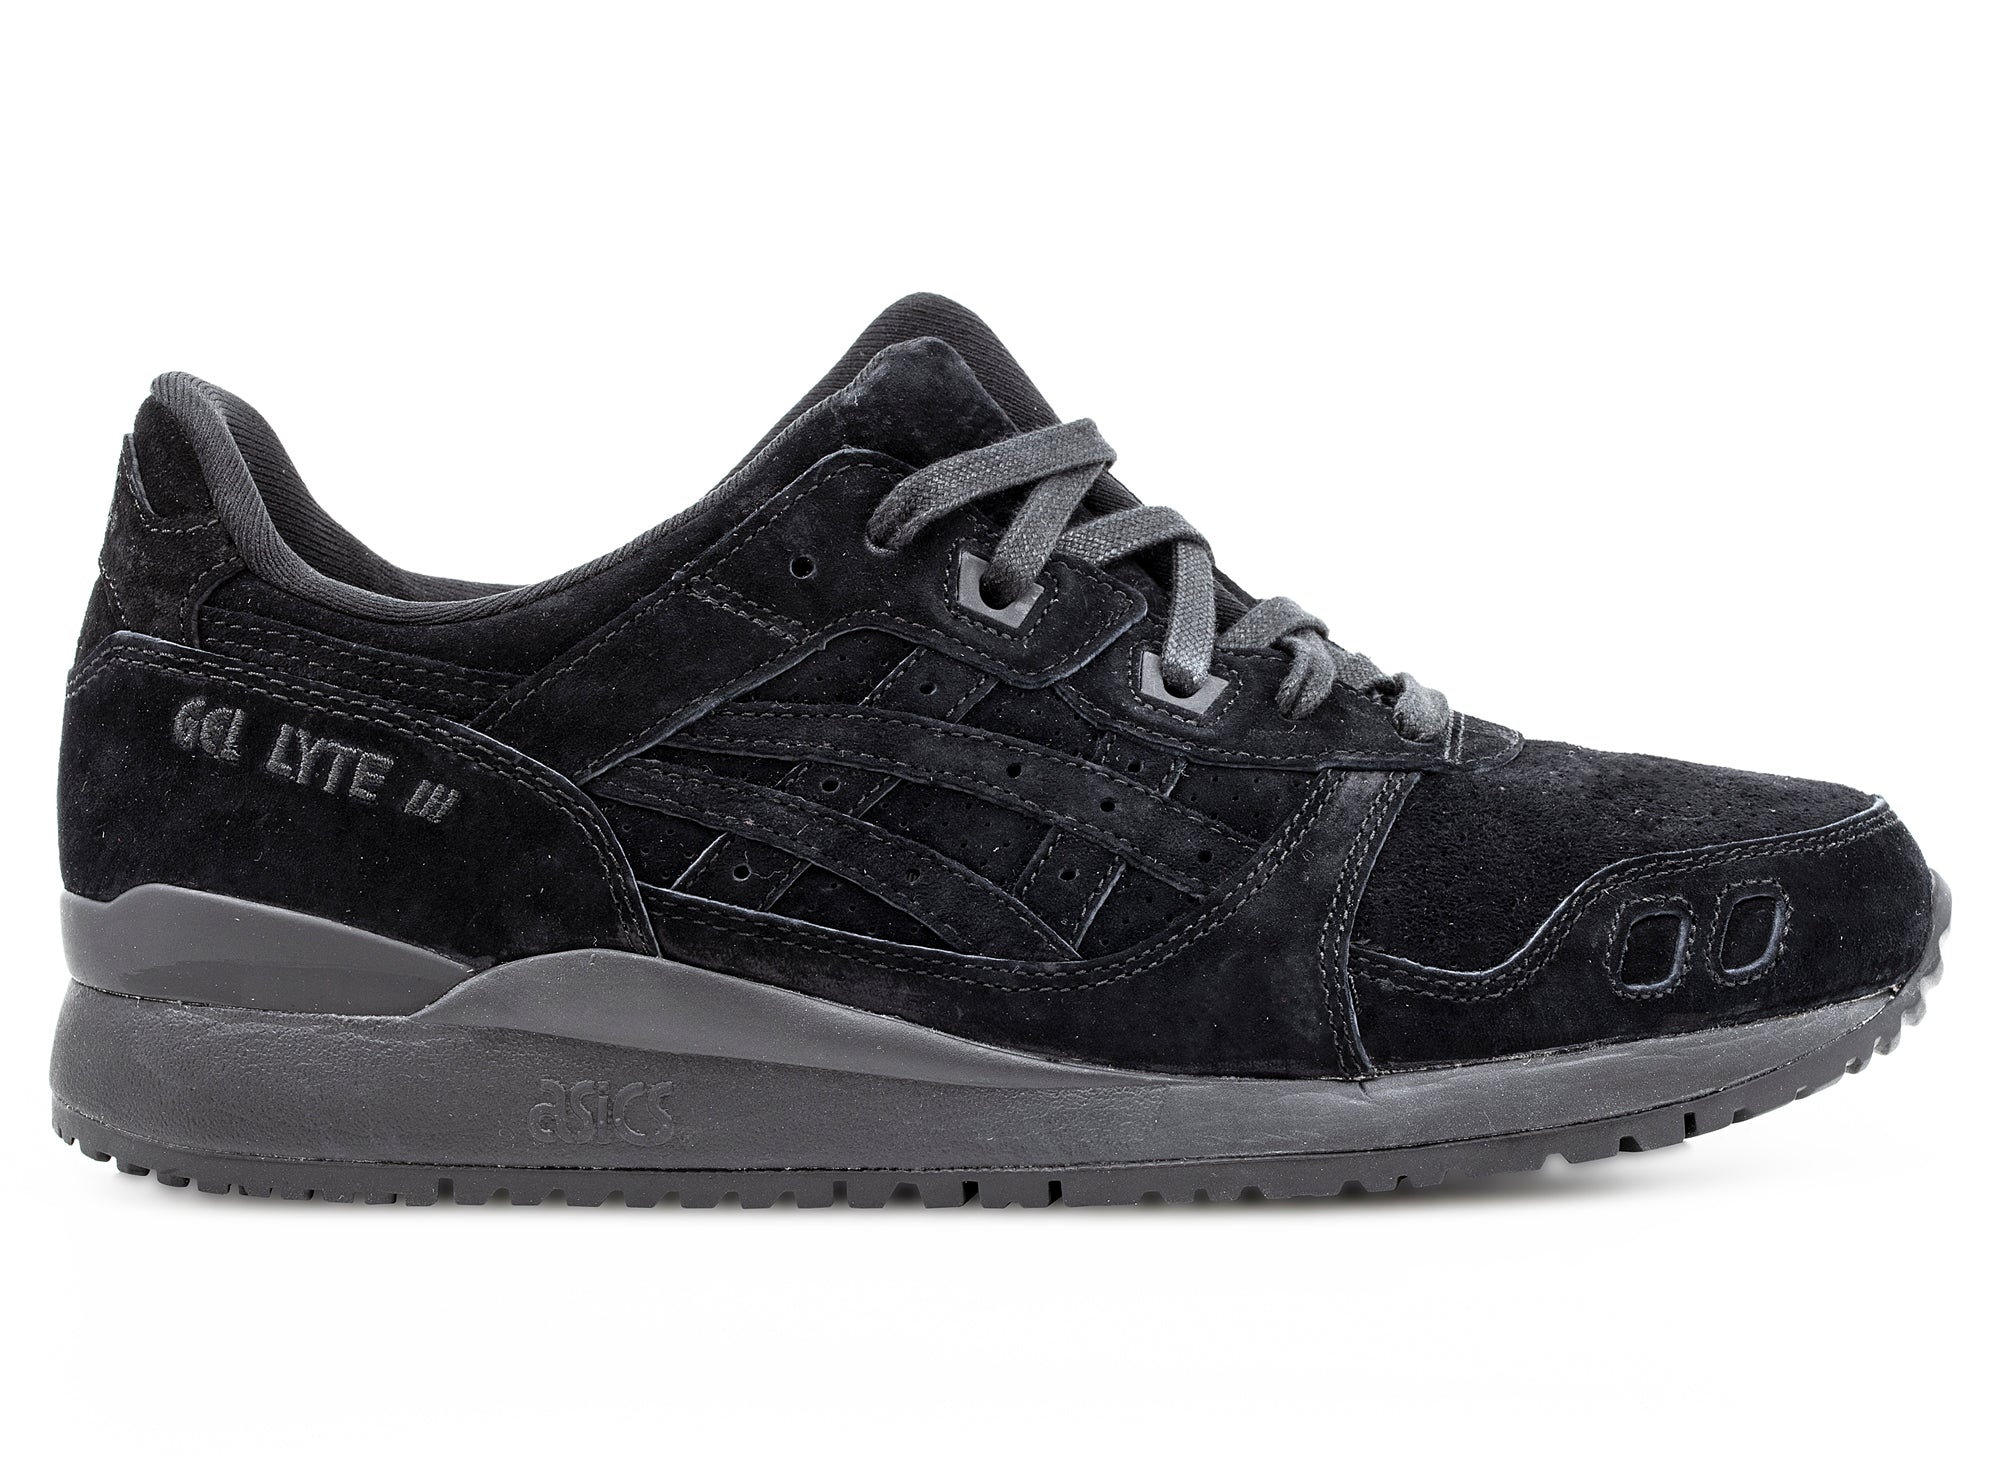 Asics Gel Lyte III Og 'Triple Black'